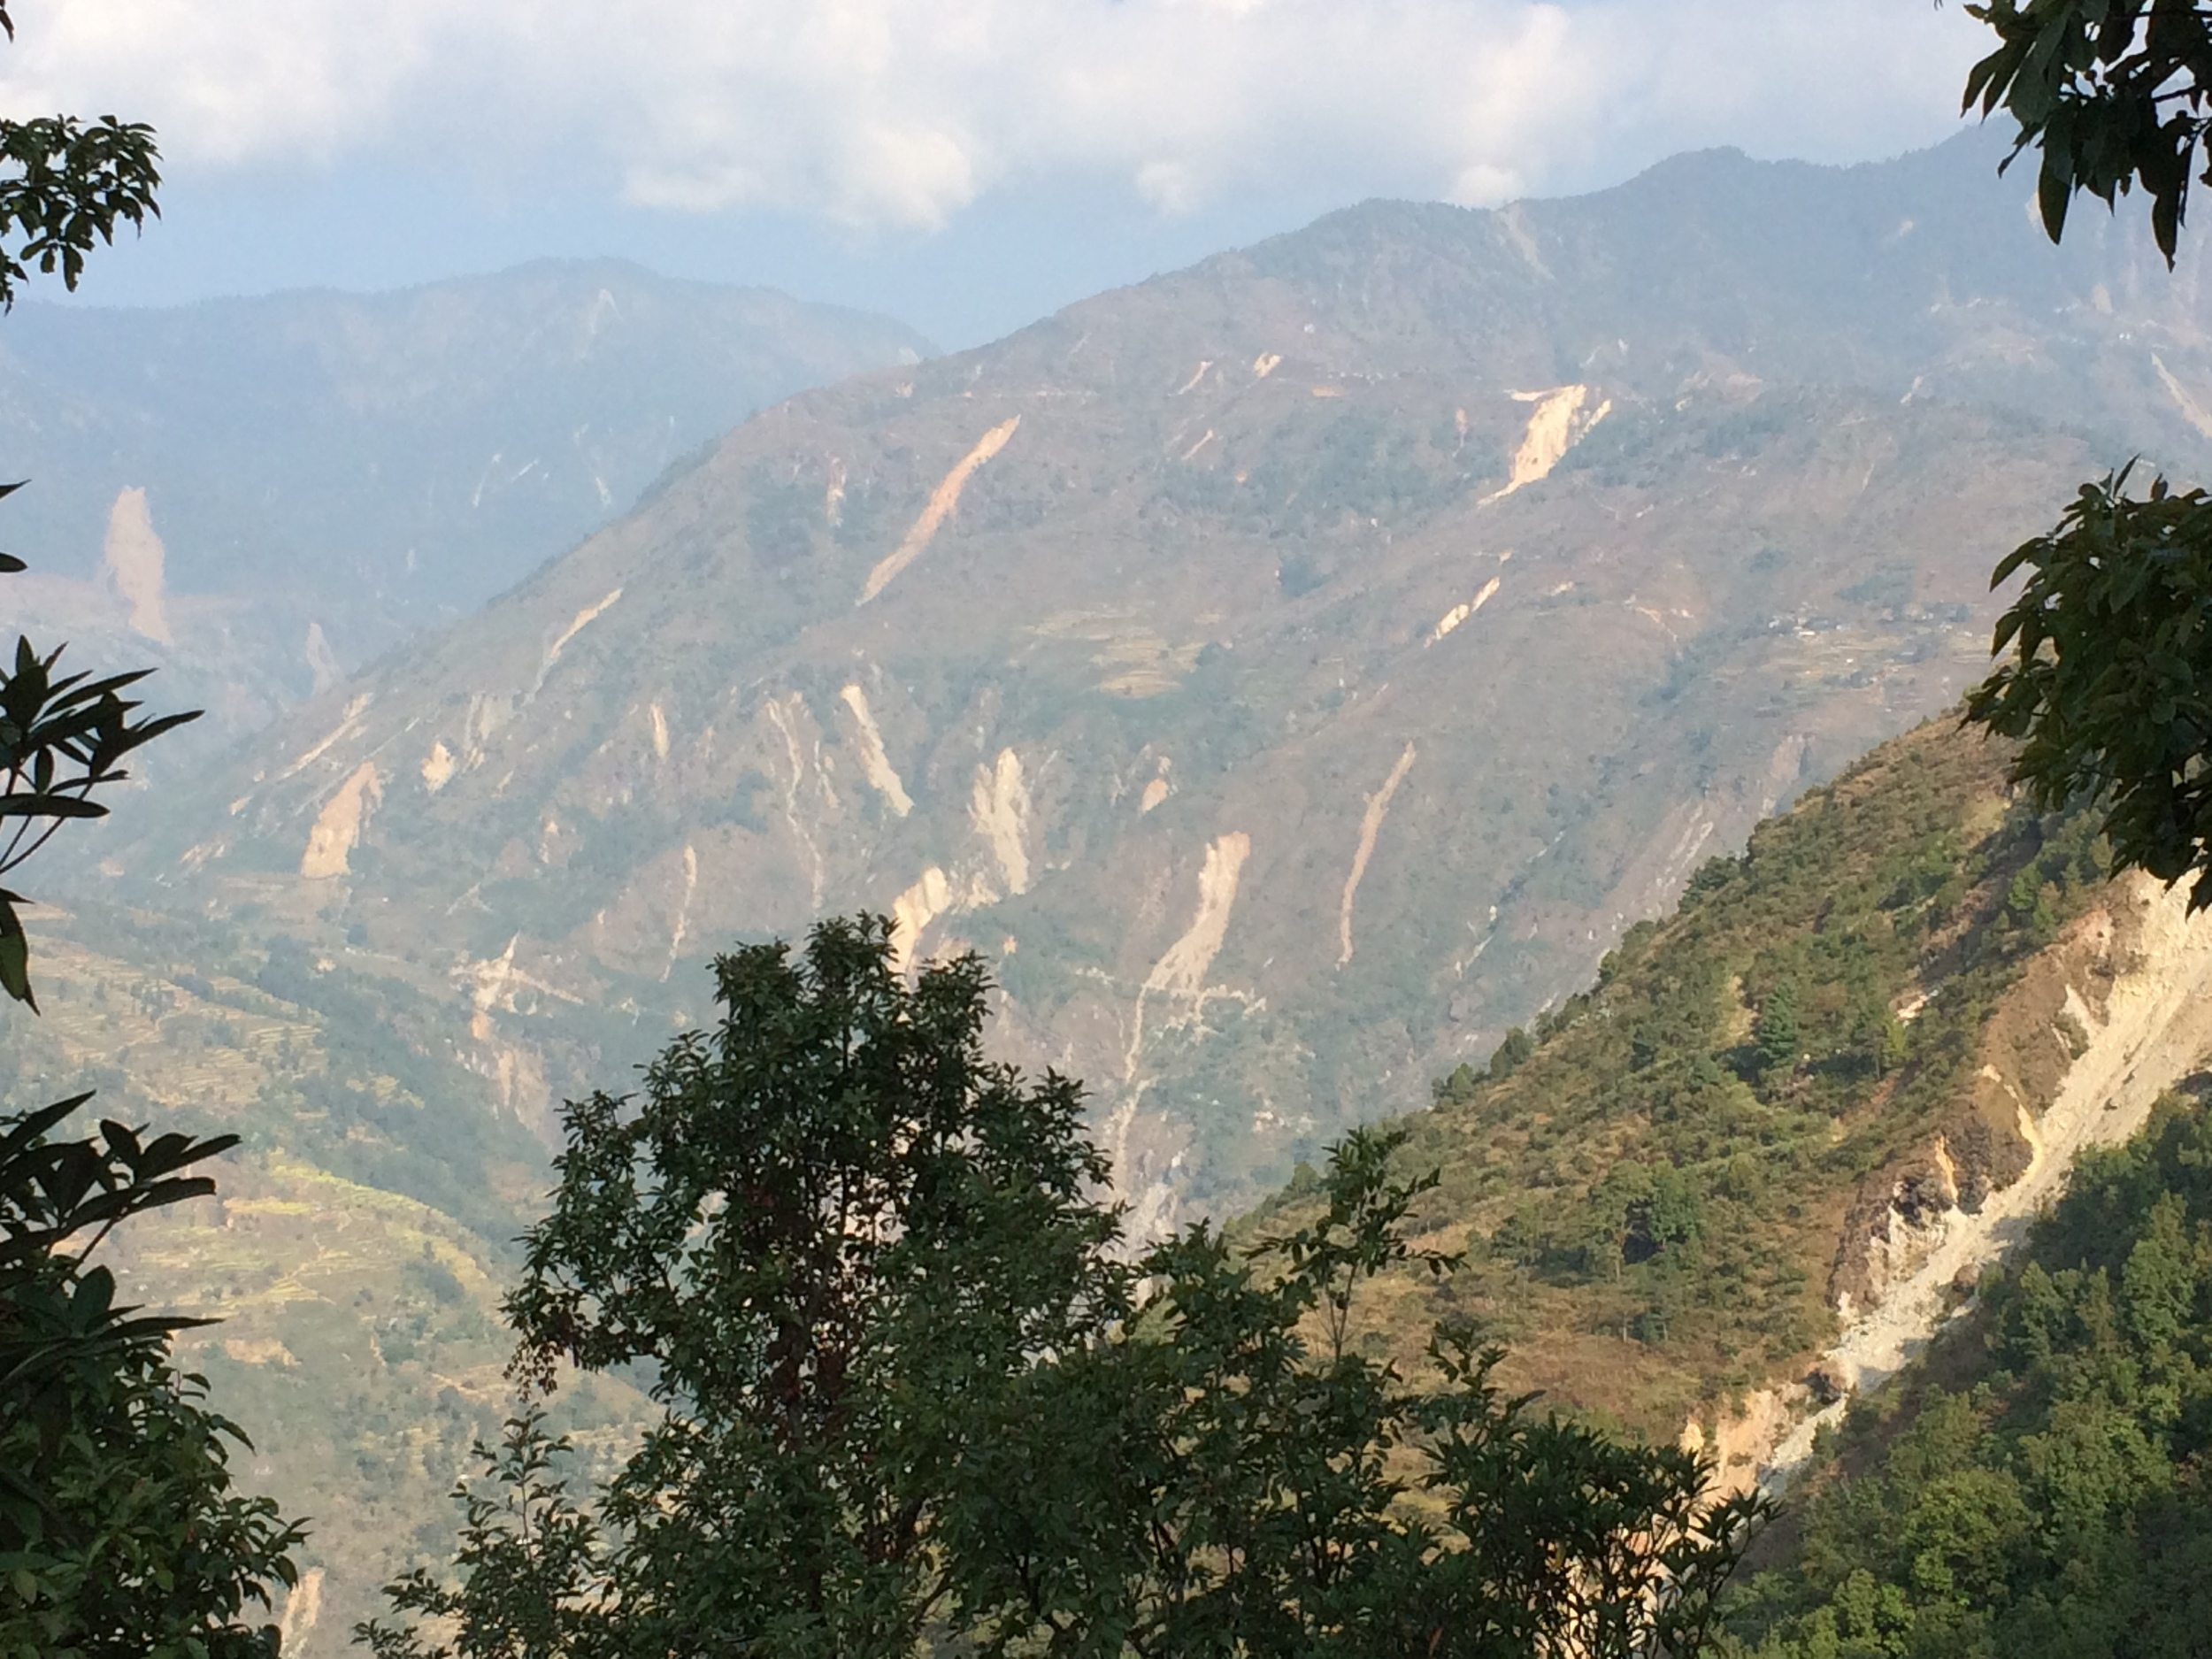 The hillsides surrounding Gati are scarred from deadly landslides of the past